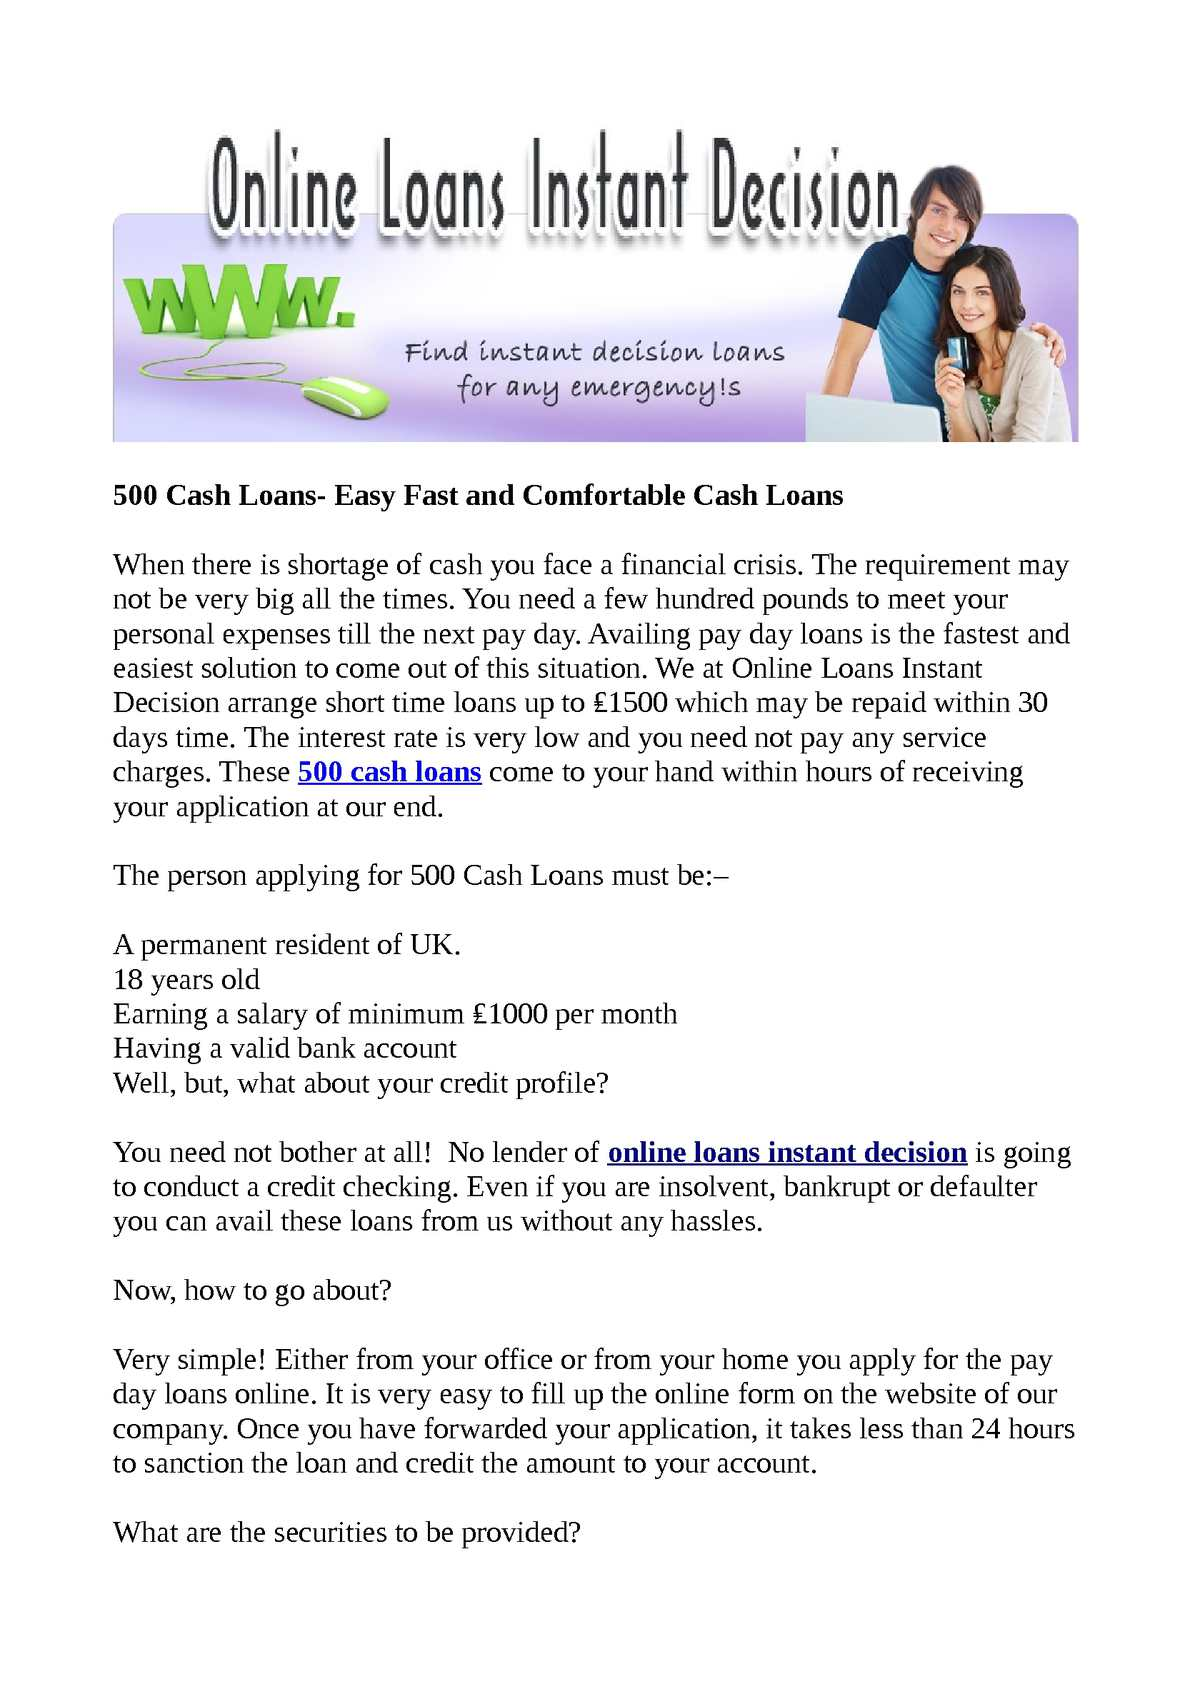 Calaméo - 500 Cash Loans- Easy Fast and Comfortable Cash Loans